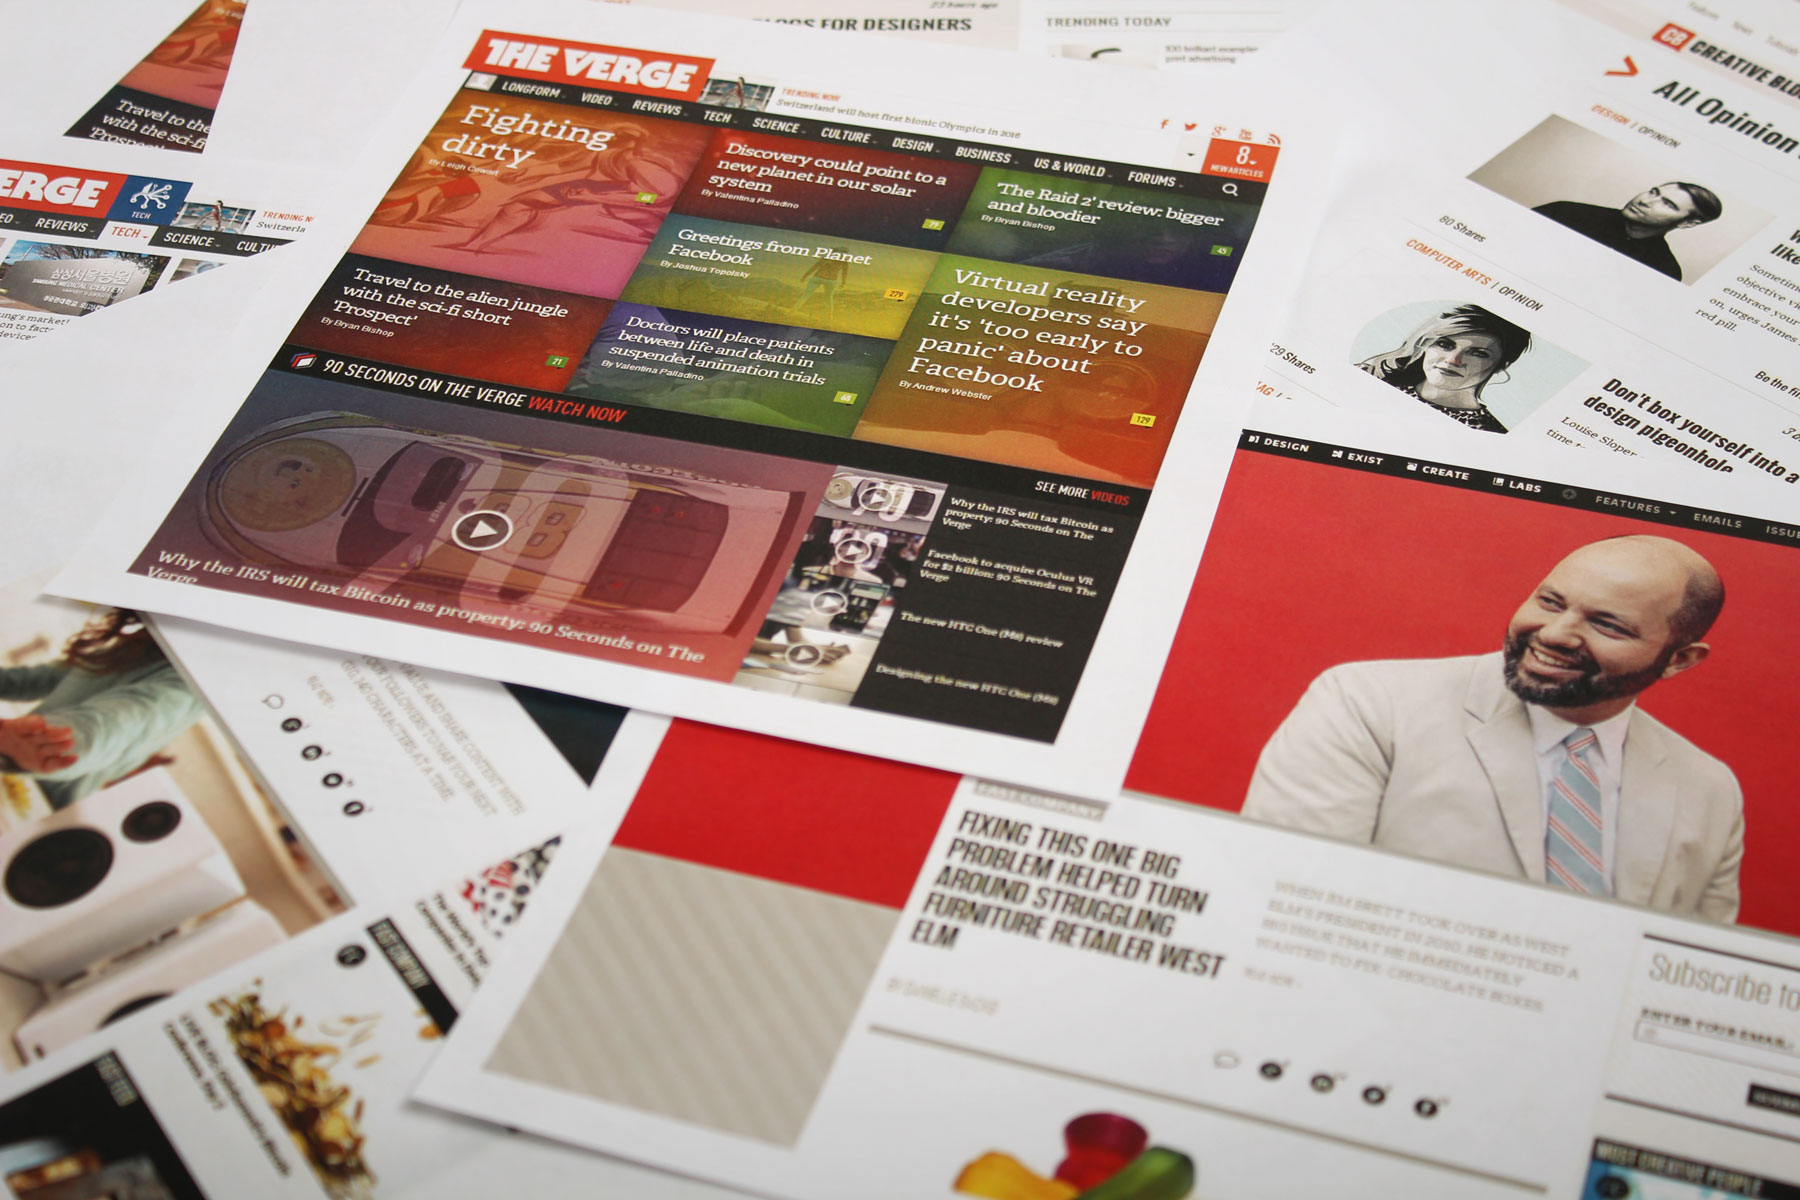 Our focus was to create an engaging and content-focused user experience